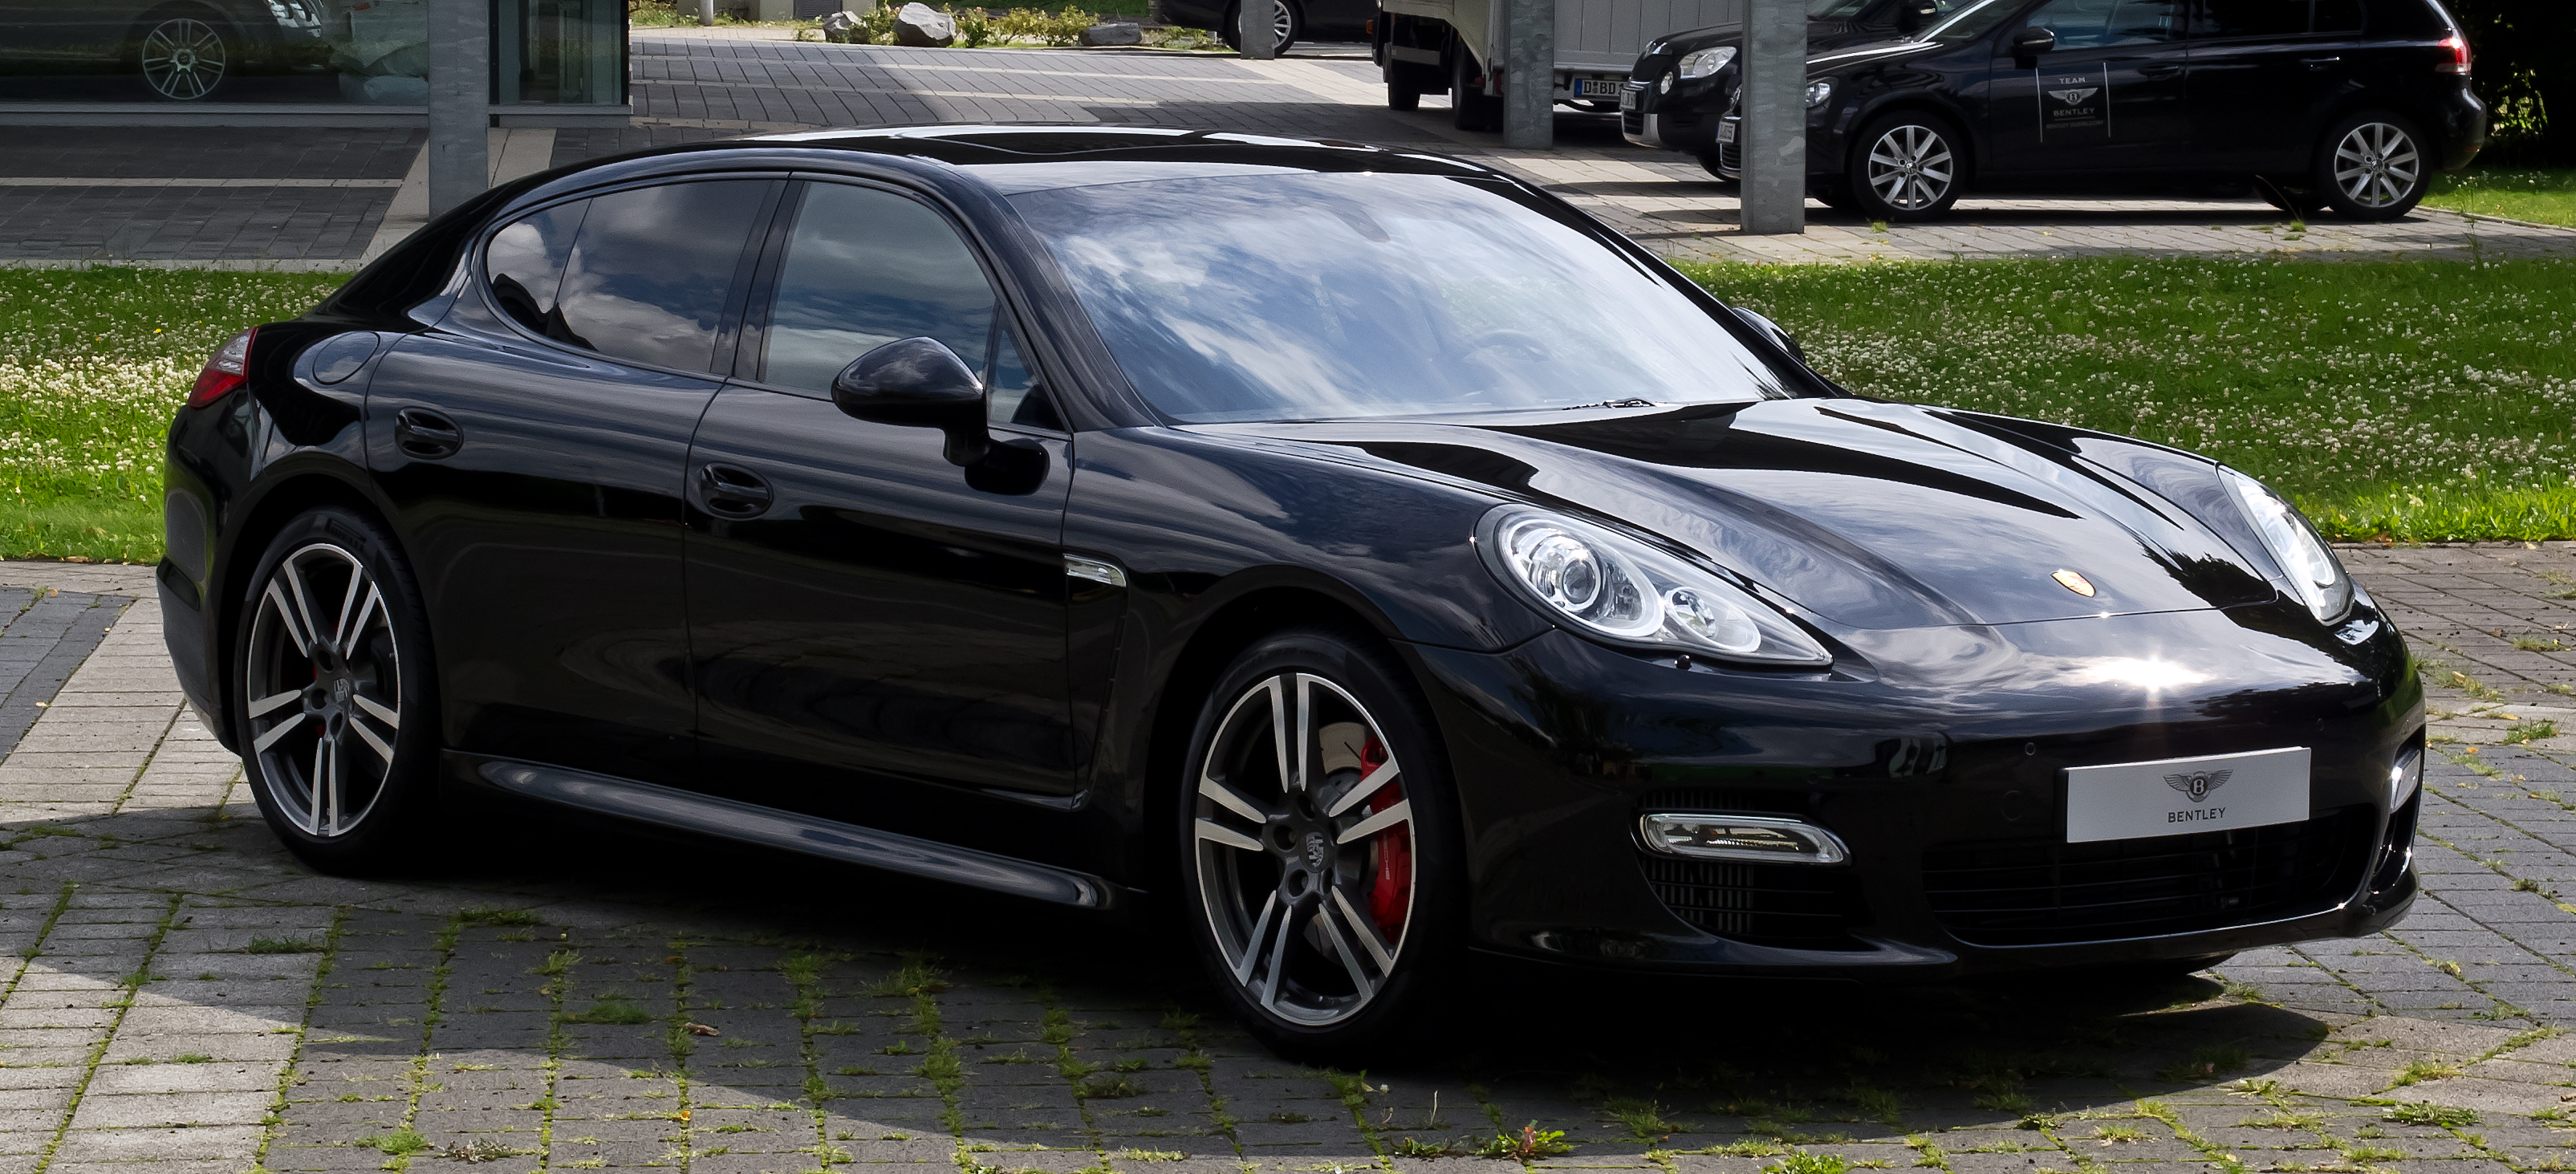 file porsche panamera turbo 970 frontansicht 2 18 juli 2012 d wikimedia. Black Bedroom Furniture Sets. Home Design Ideas